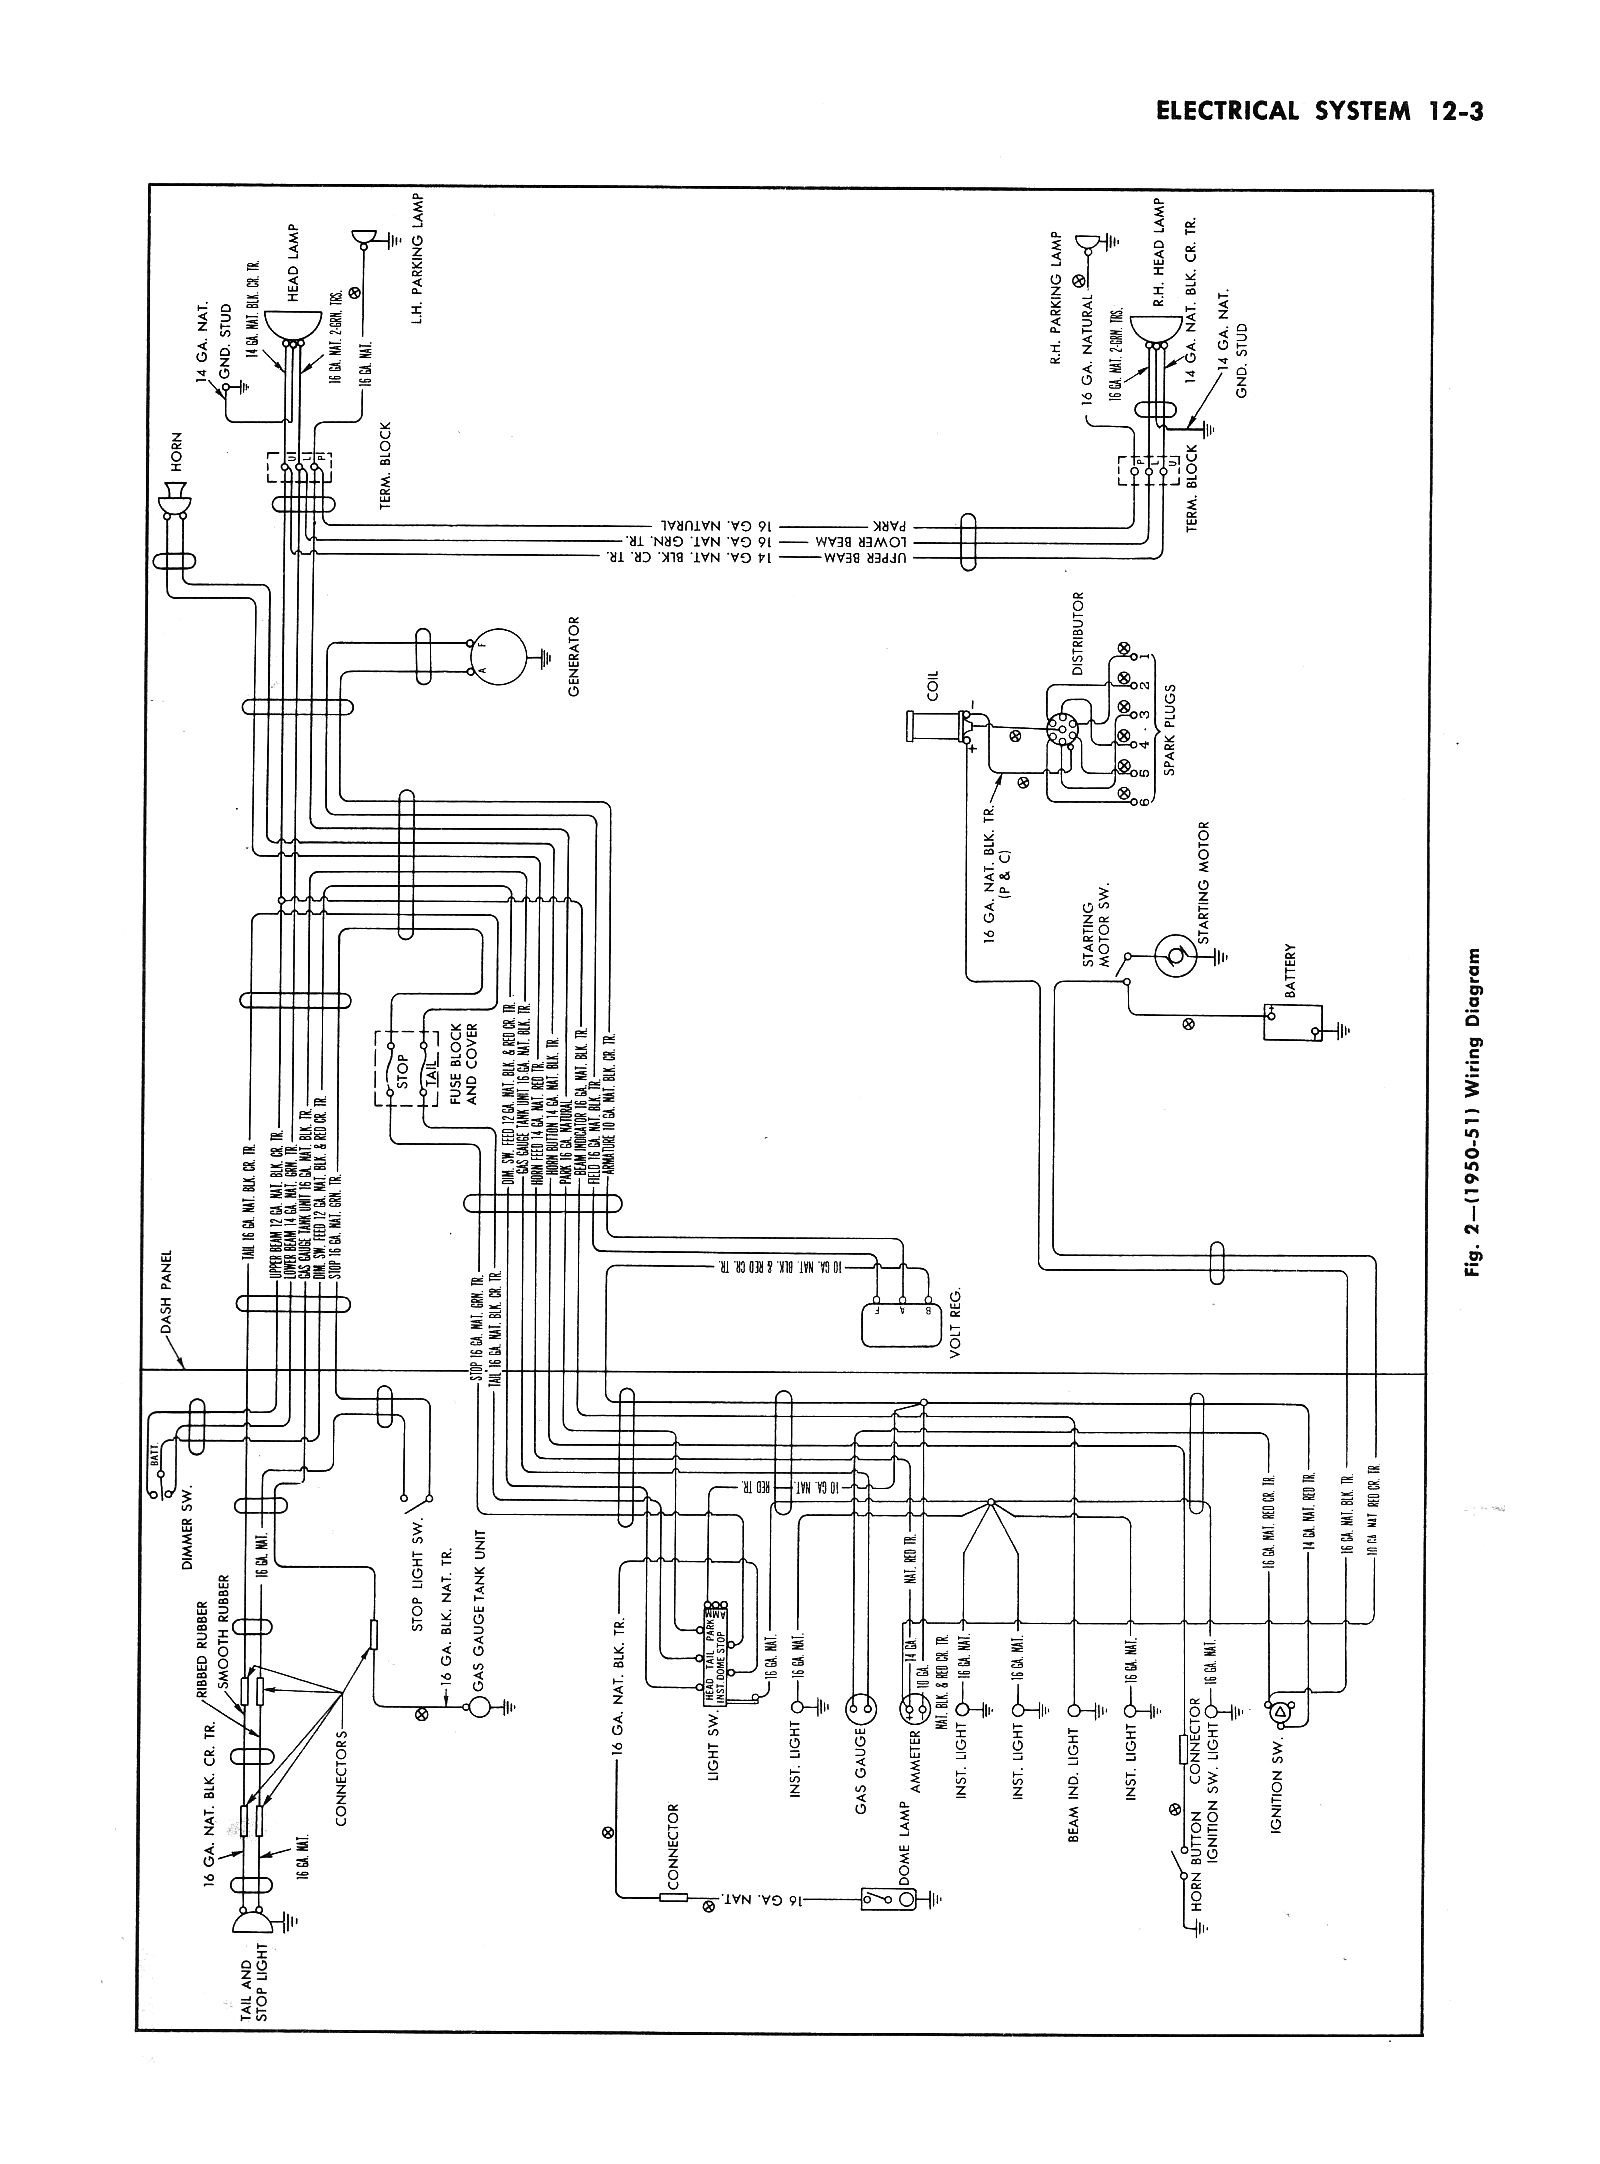 50ctsm1203 chevy wiring diagrams 66 Chevy Headlight Switch Wiring Diagram at aneh.co